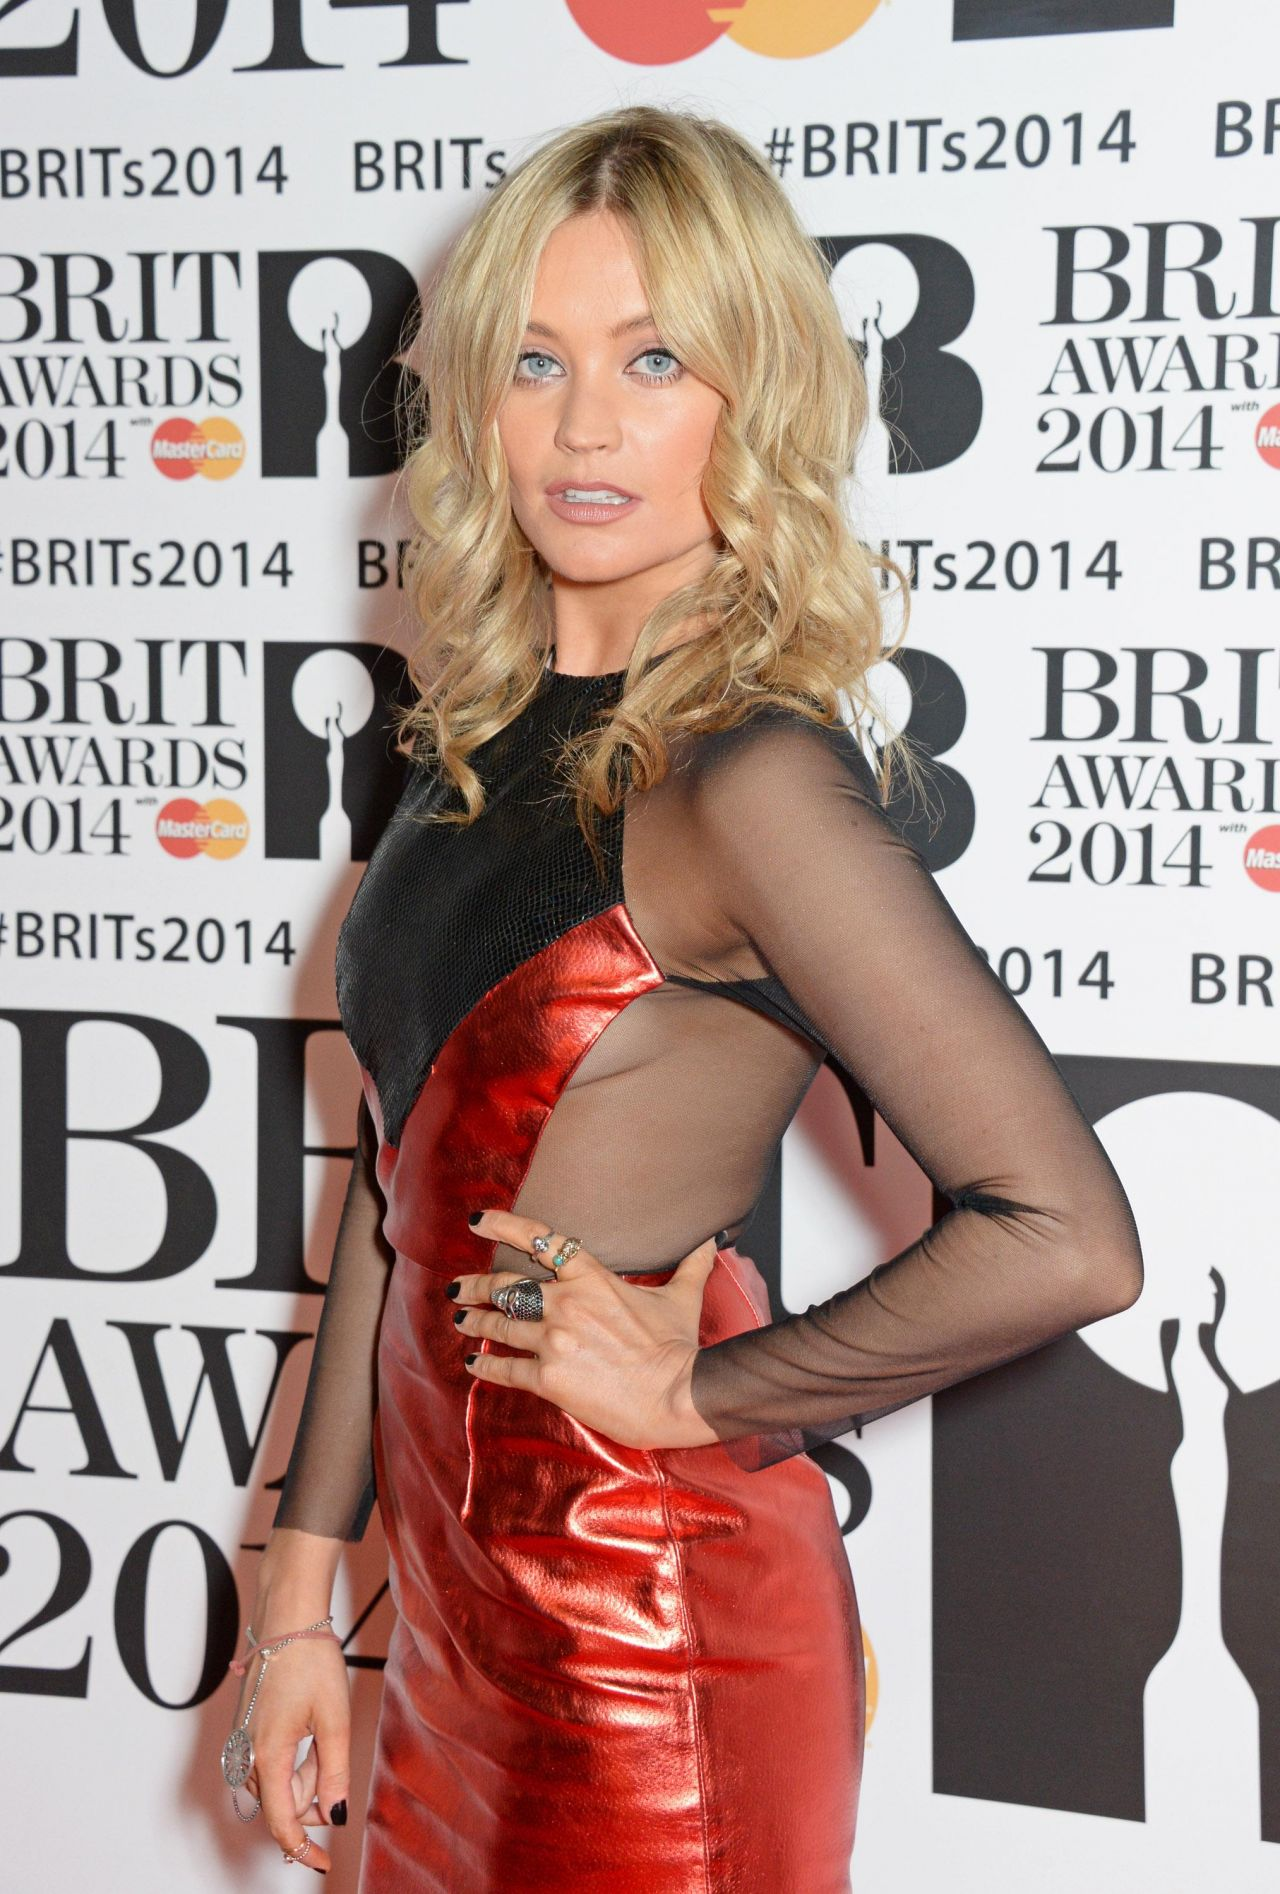 Laura Whitmore - 2014 BRIT Awards in London